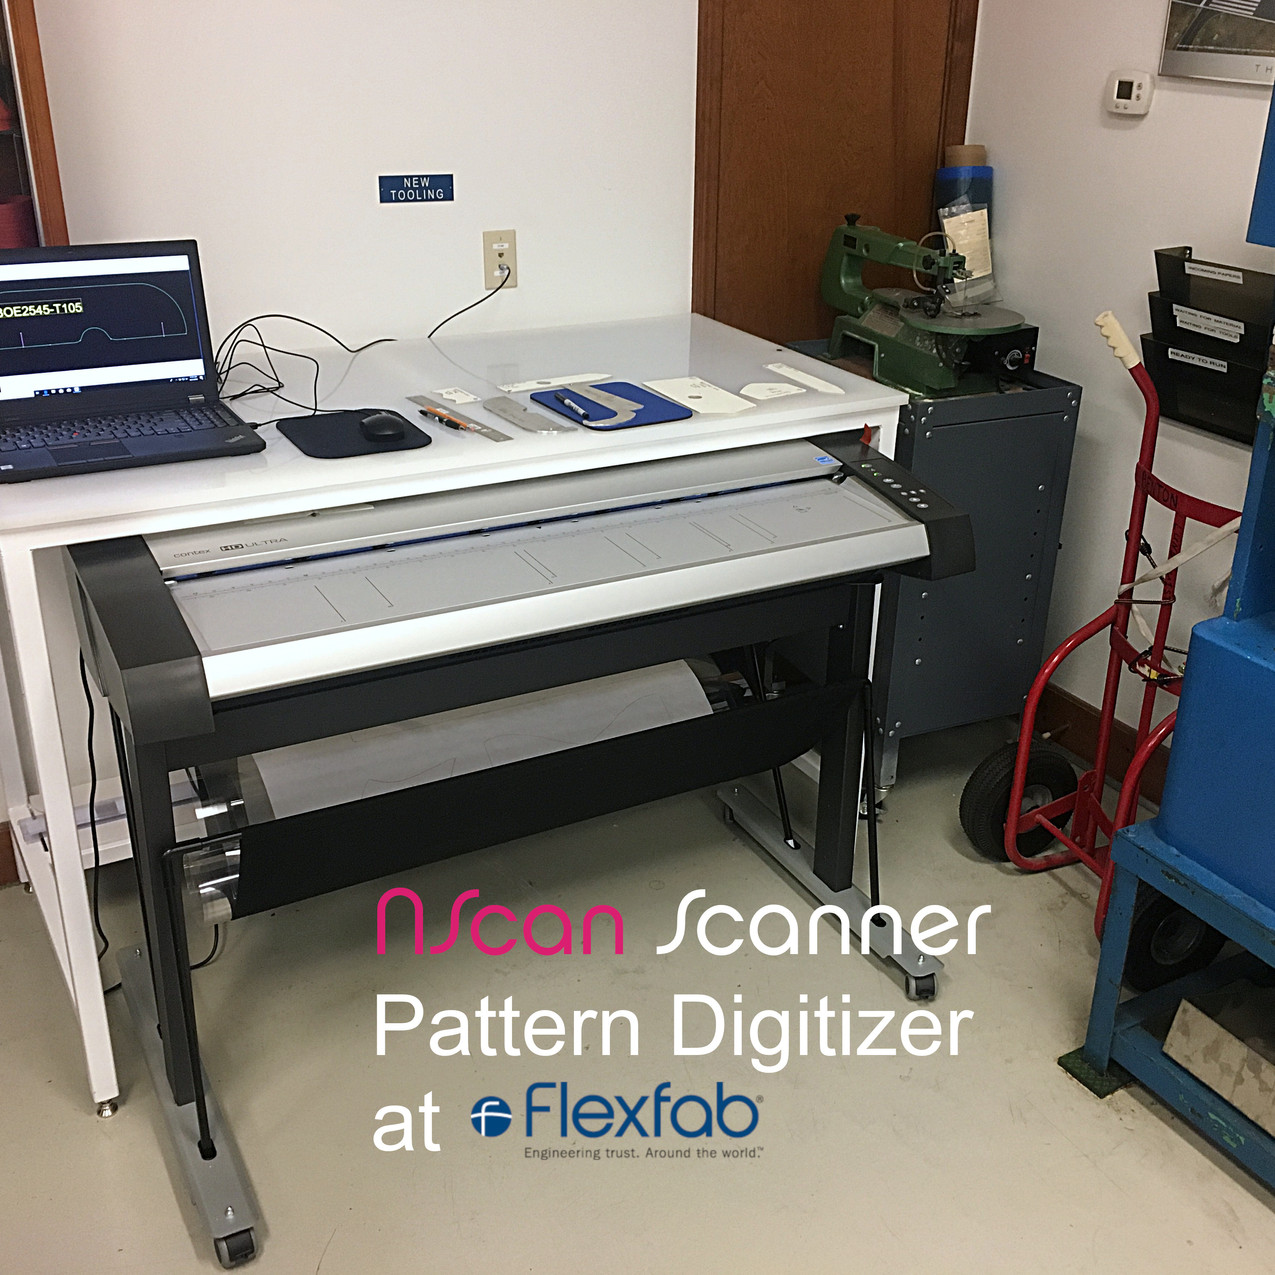 Flexfab NScan digitizing system